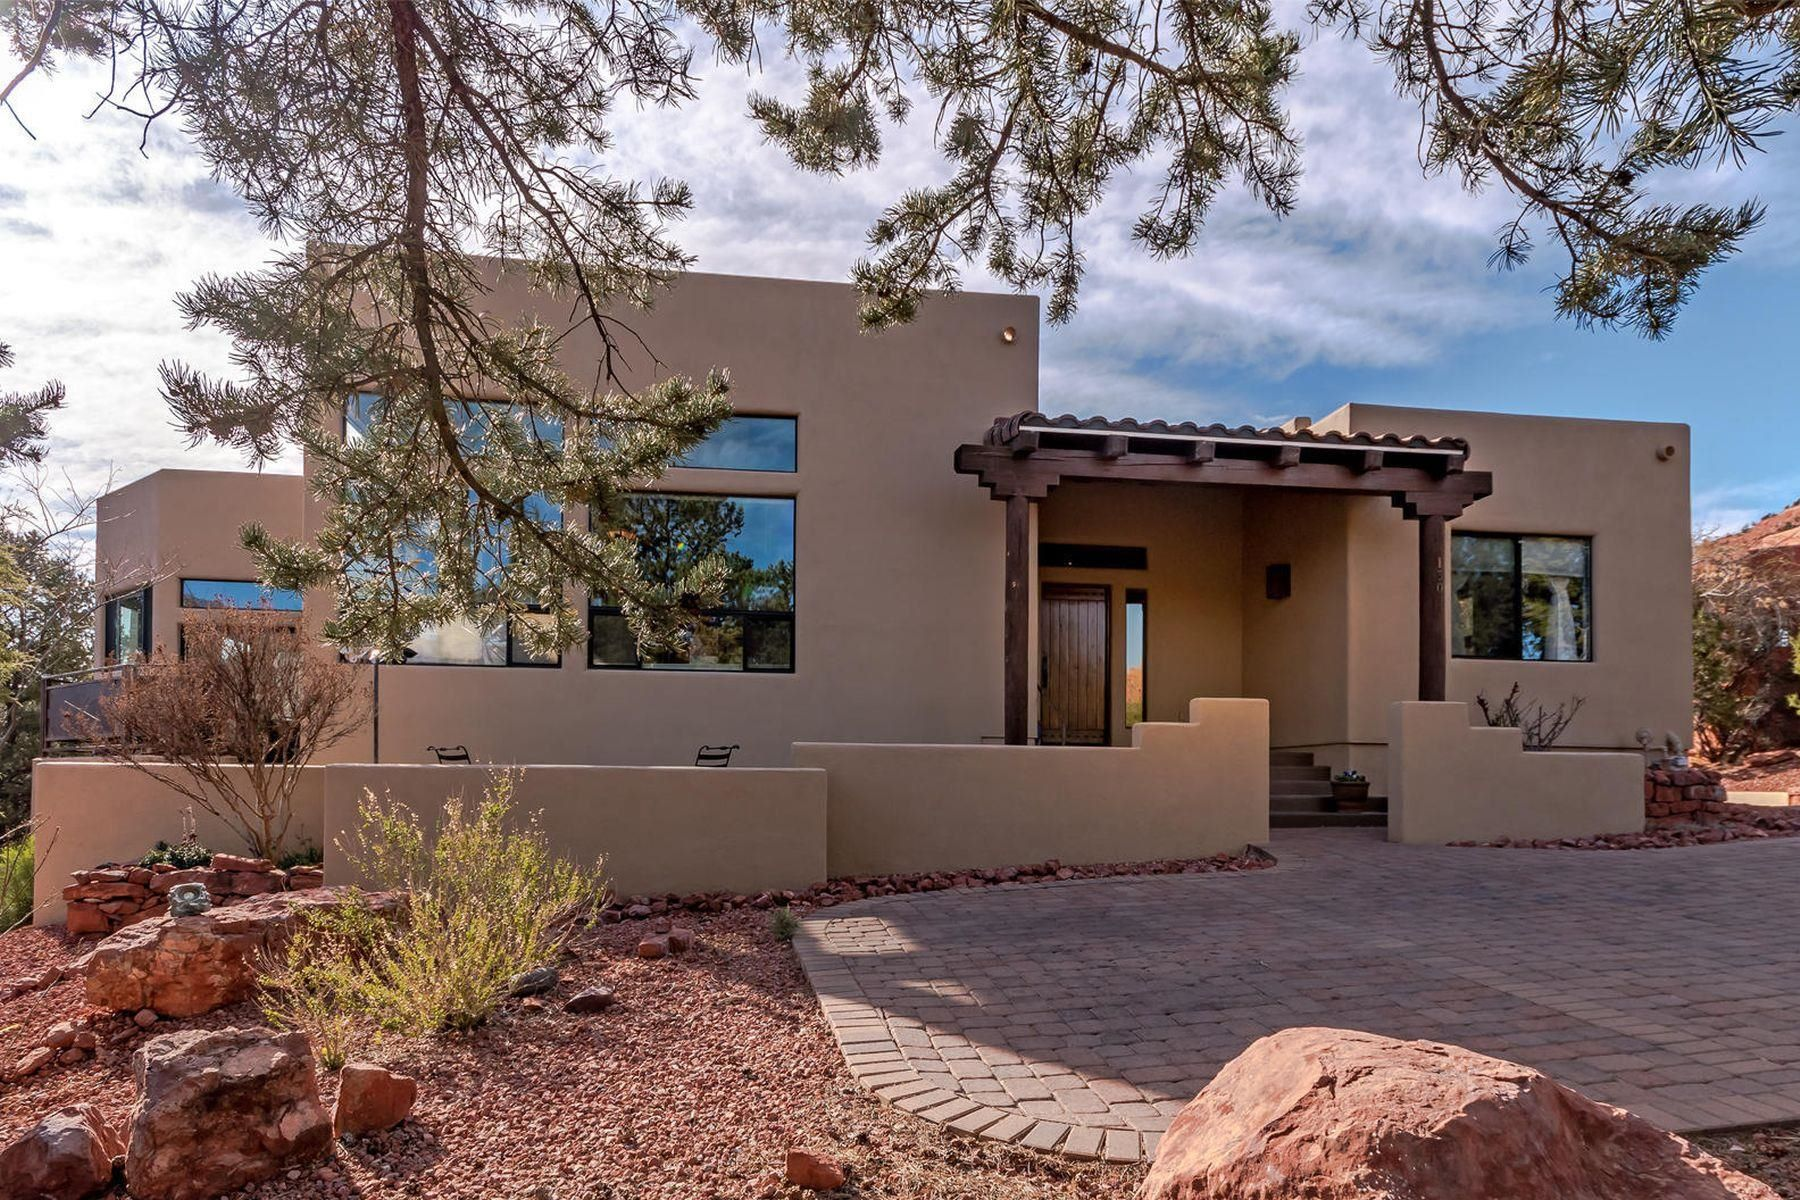 Single Family Home for Sale at Contemporary Southwest Gem 130 N Palisades Drive, Sedona, Arizona, 86336 United States